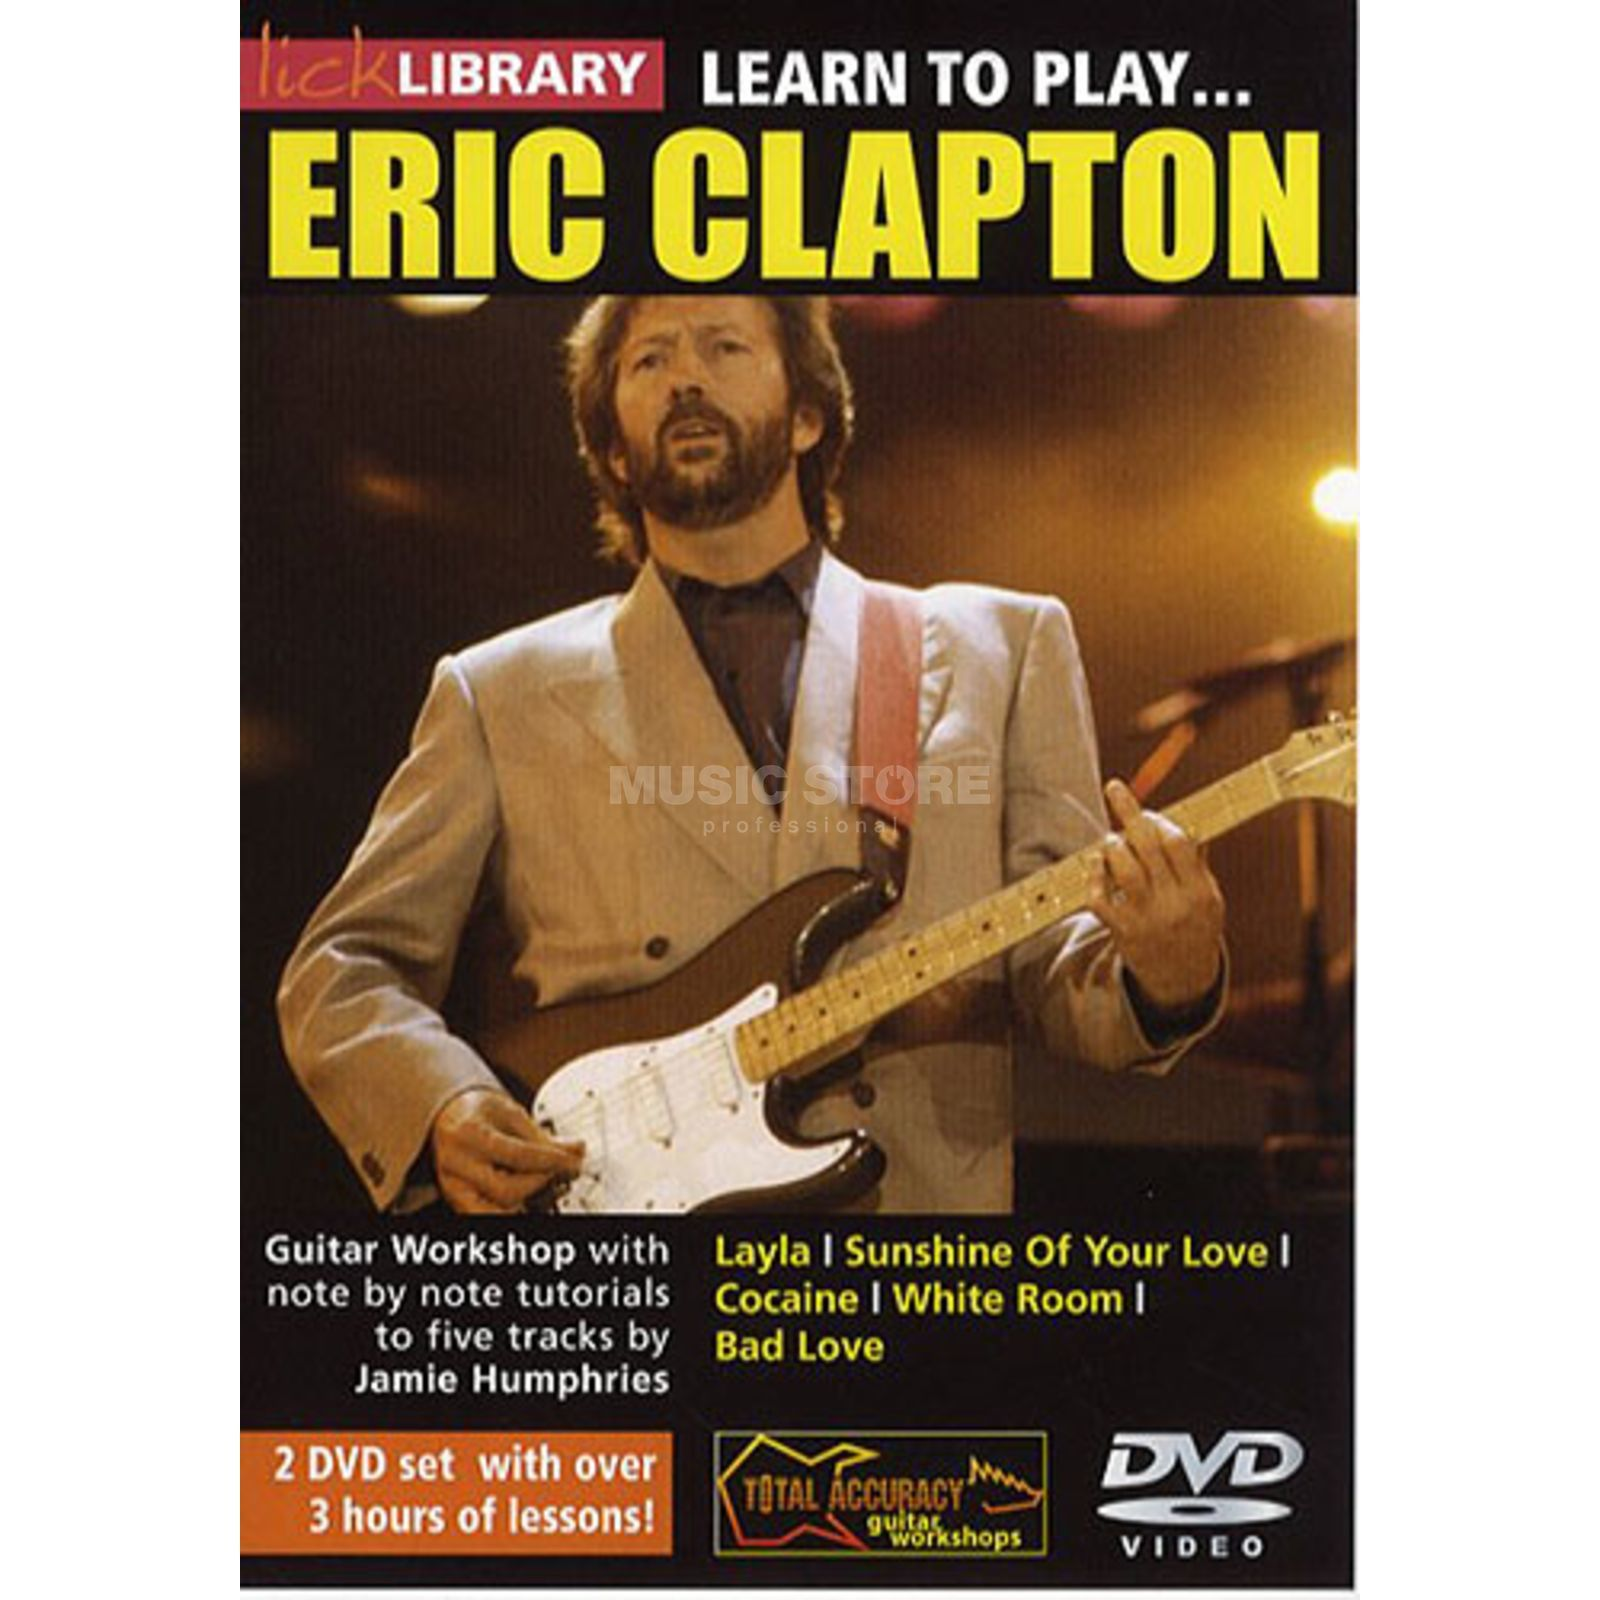 Roadrock International Lick Library: Learn To Play Eric Clapton DVD Produktbillede